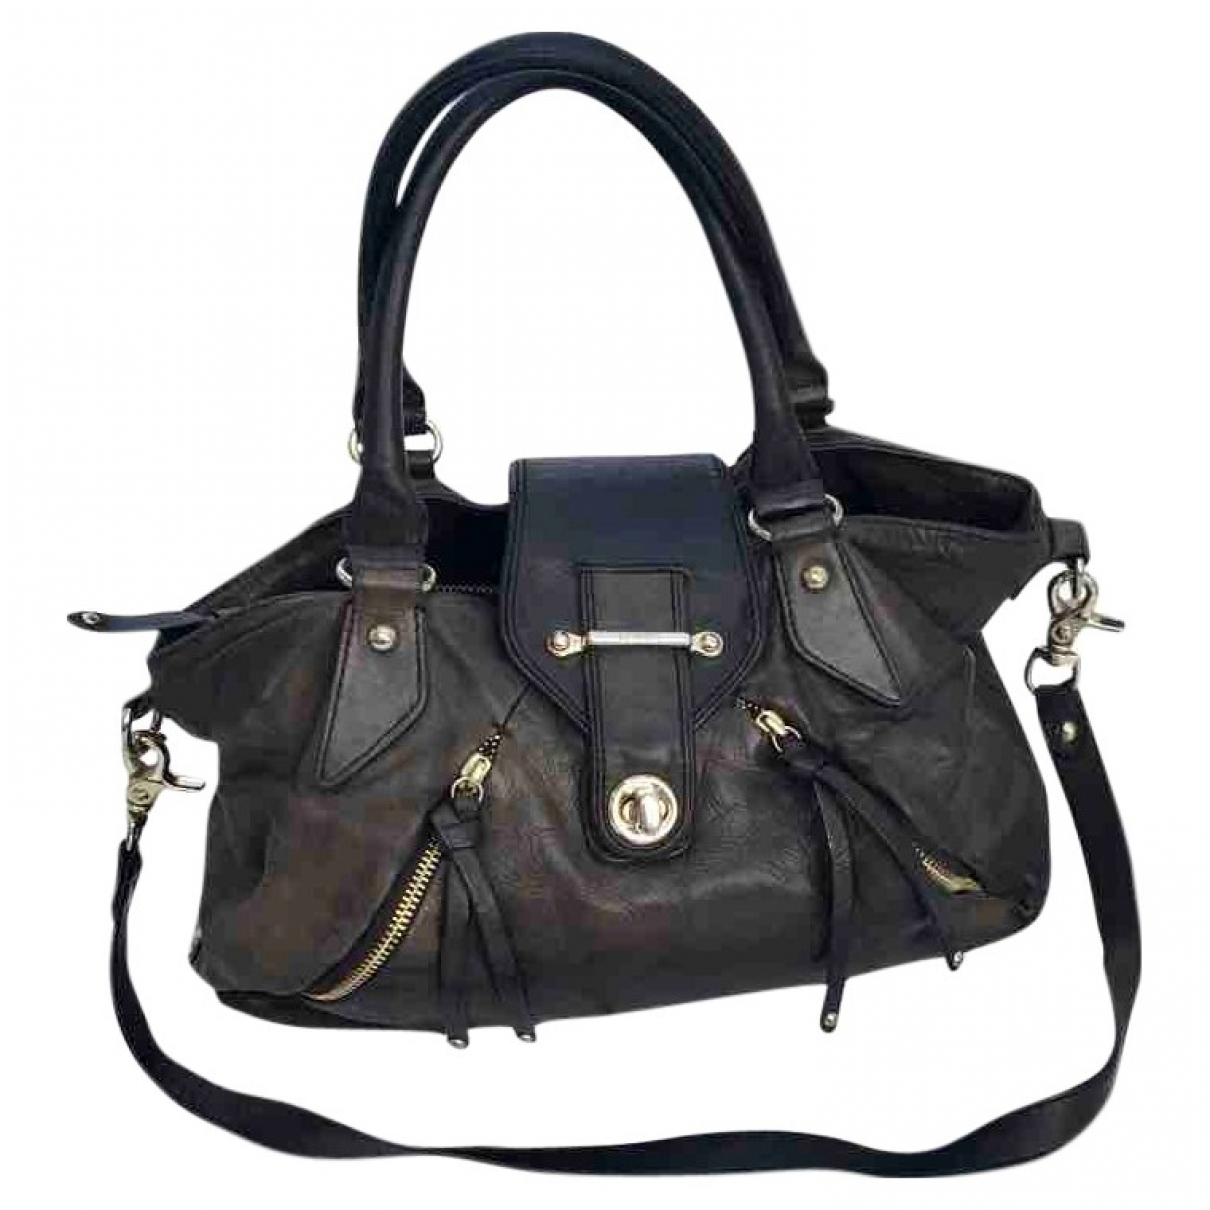 Botkier \N Brown Leather handbag for Women \N